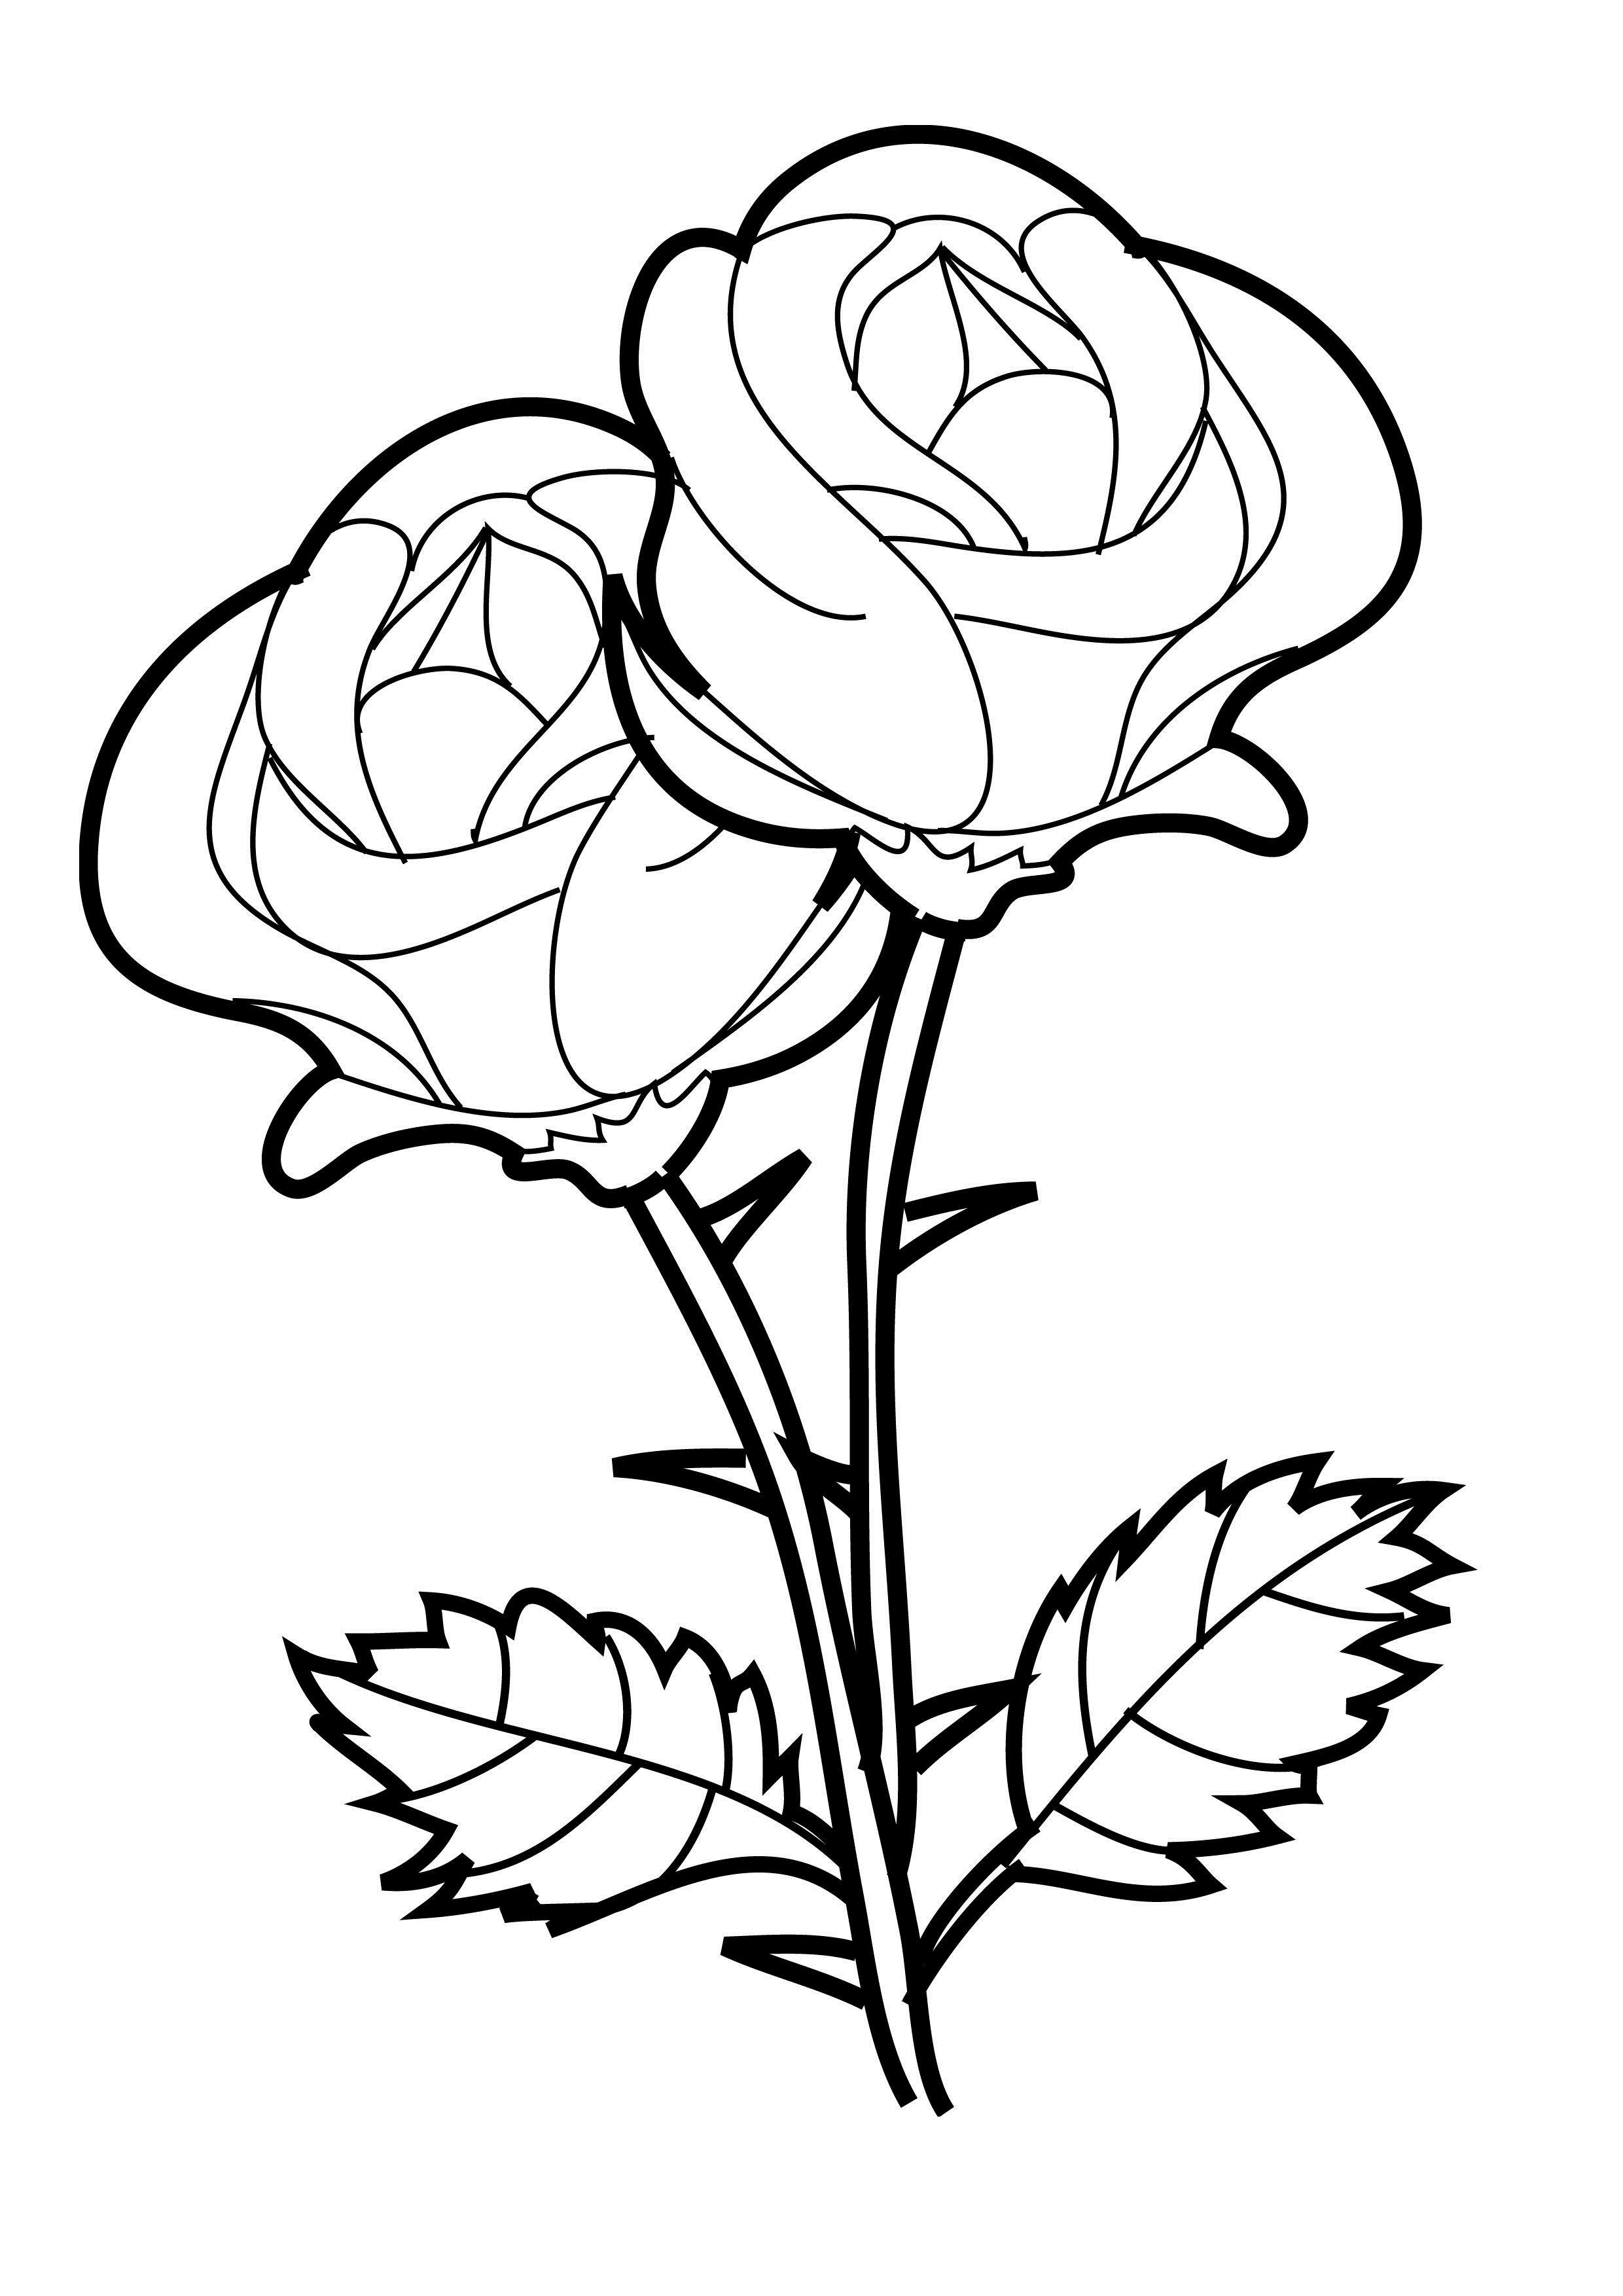 Rose for coloring